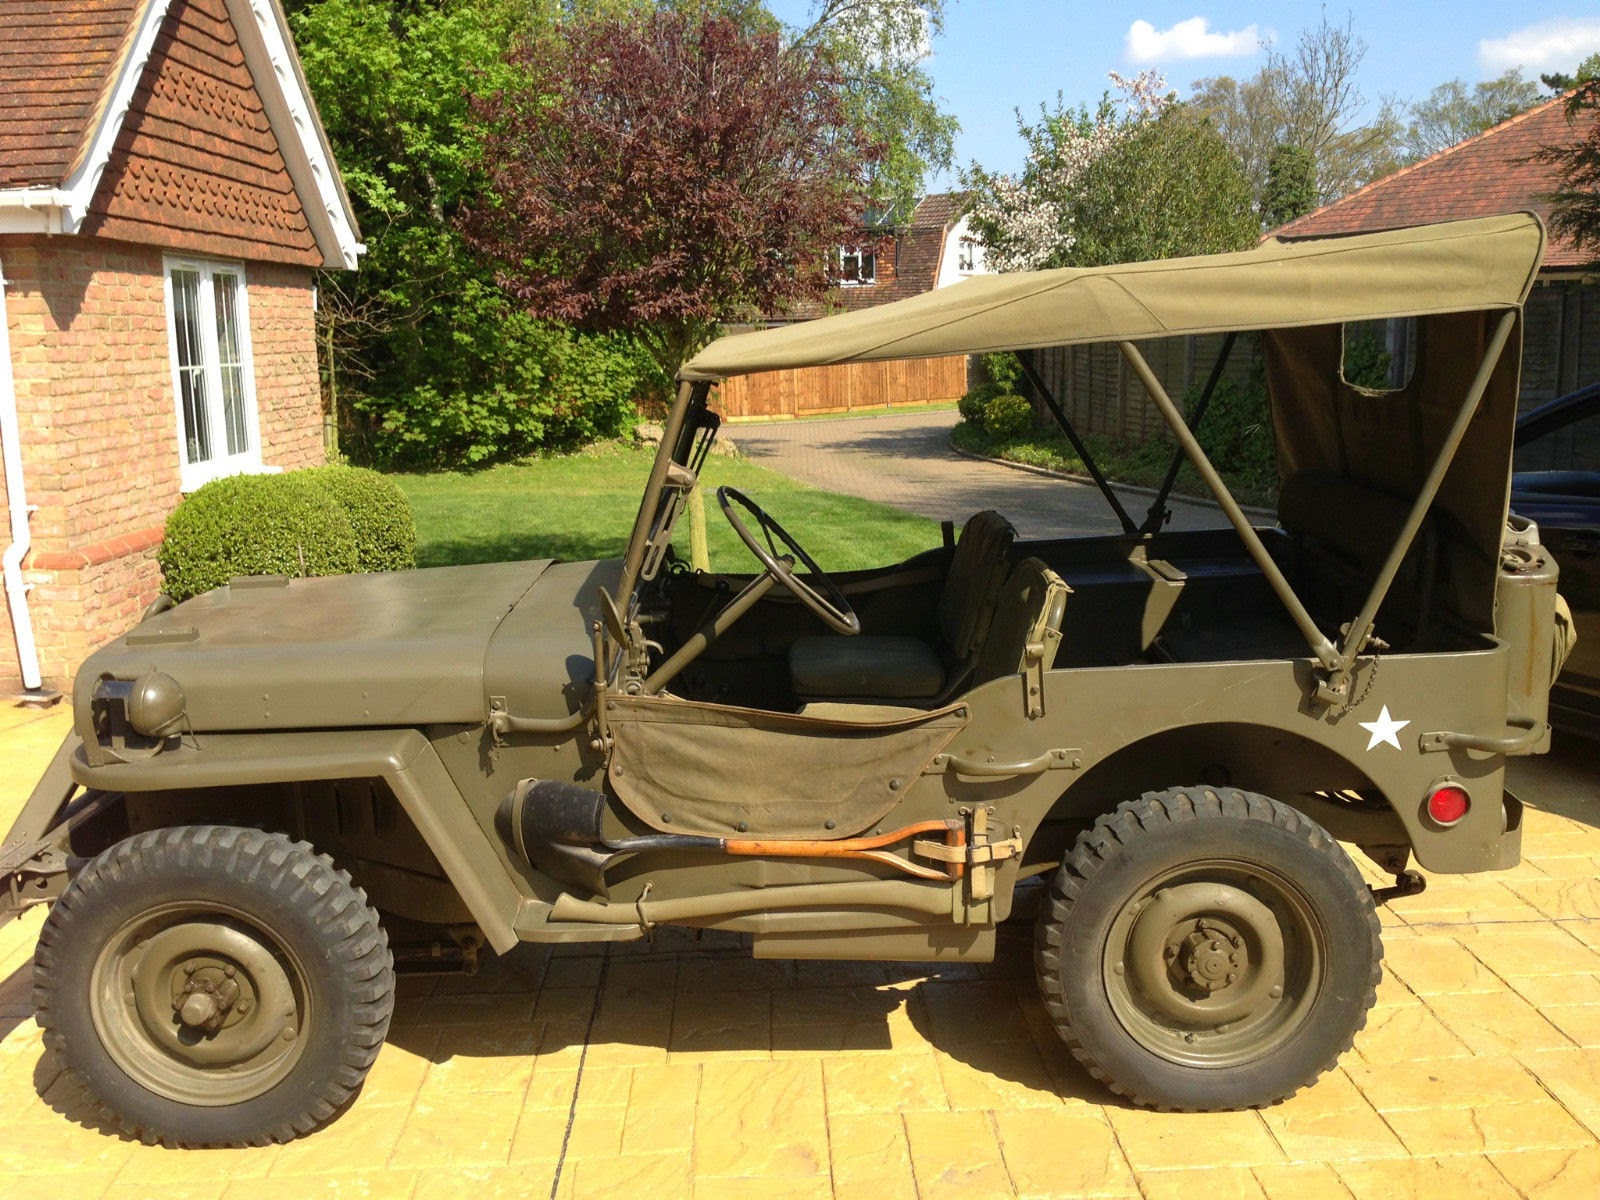 Totally original 1945 Ford GPW for Sale - 4x4 Cars